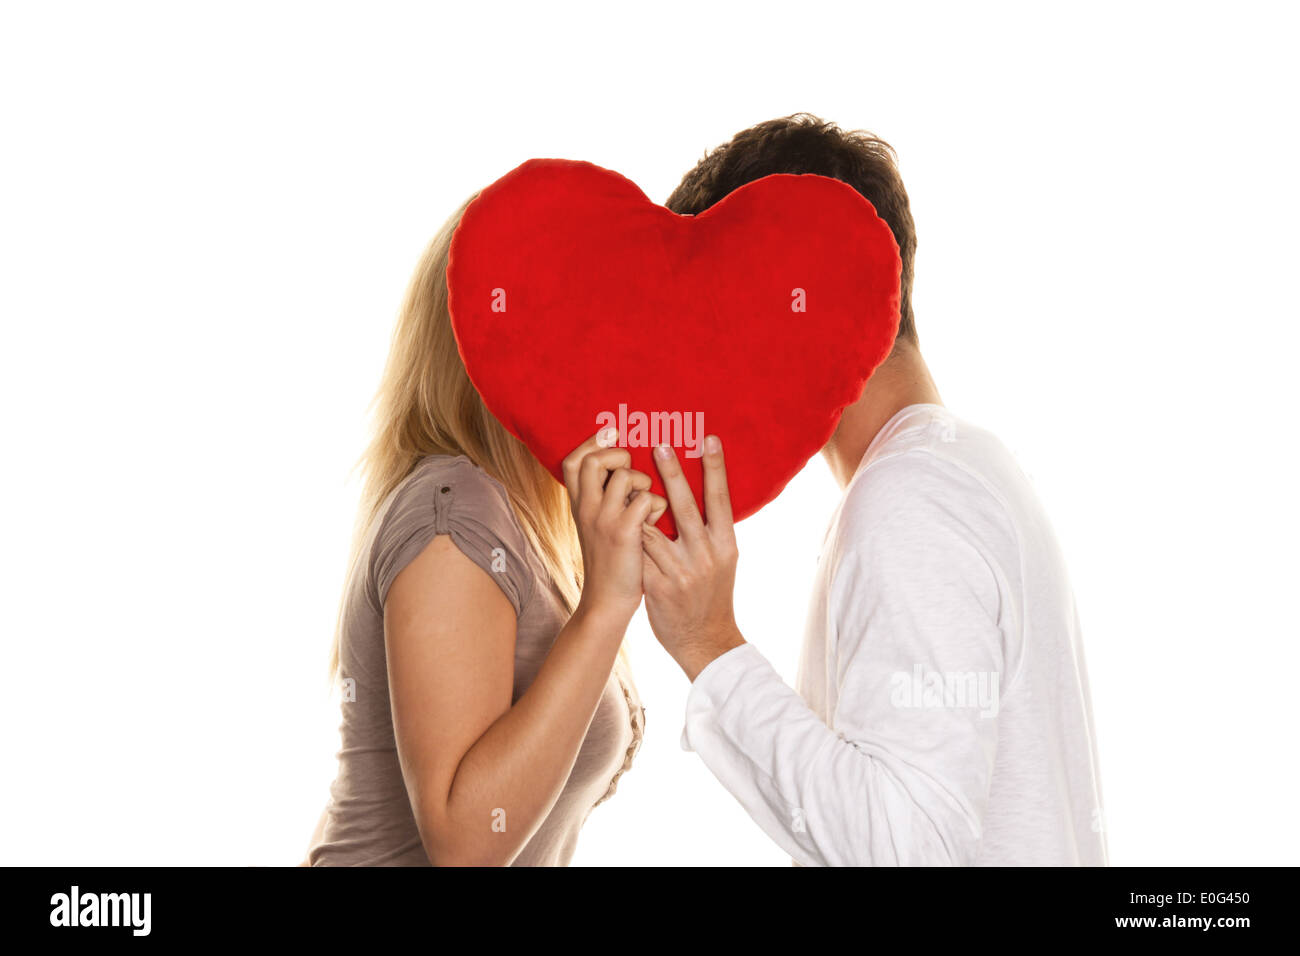 Pair in love kisses each other behind a heart. Love is nice. Confidential love, Verliebtes Paar kuesst sich hinter einem Herz. L - Stock Image